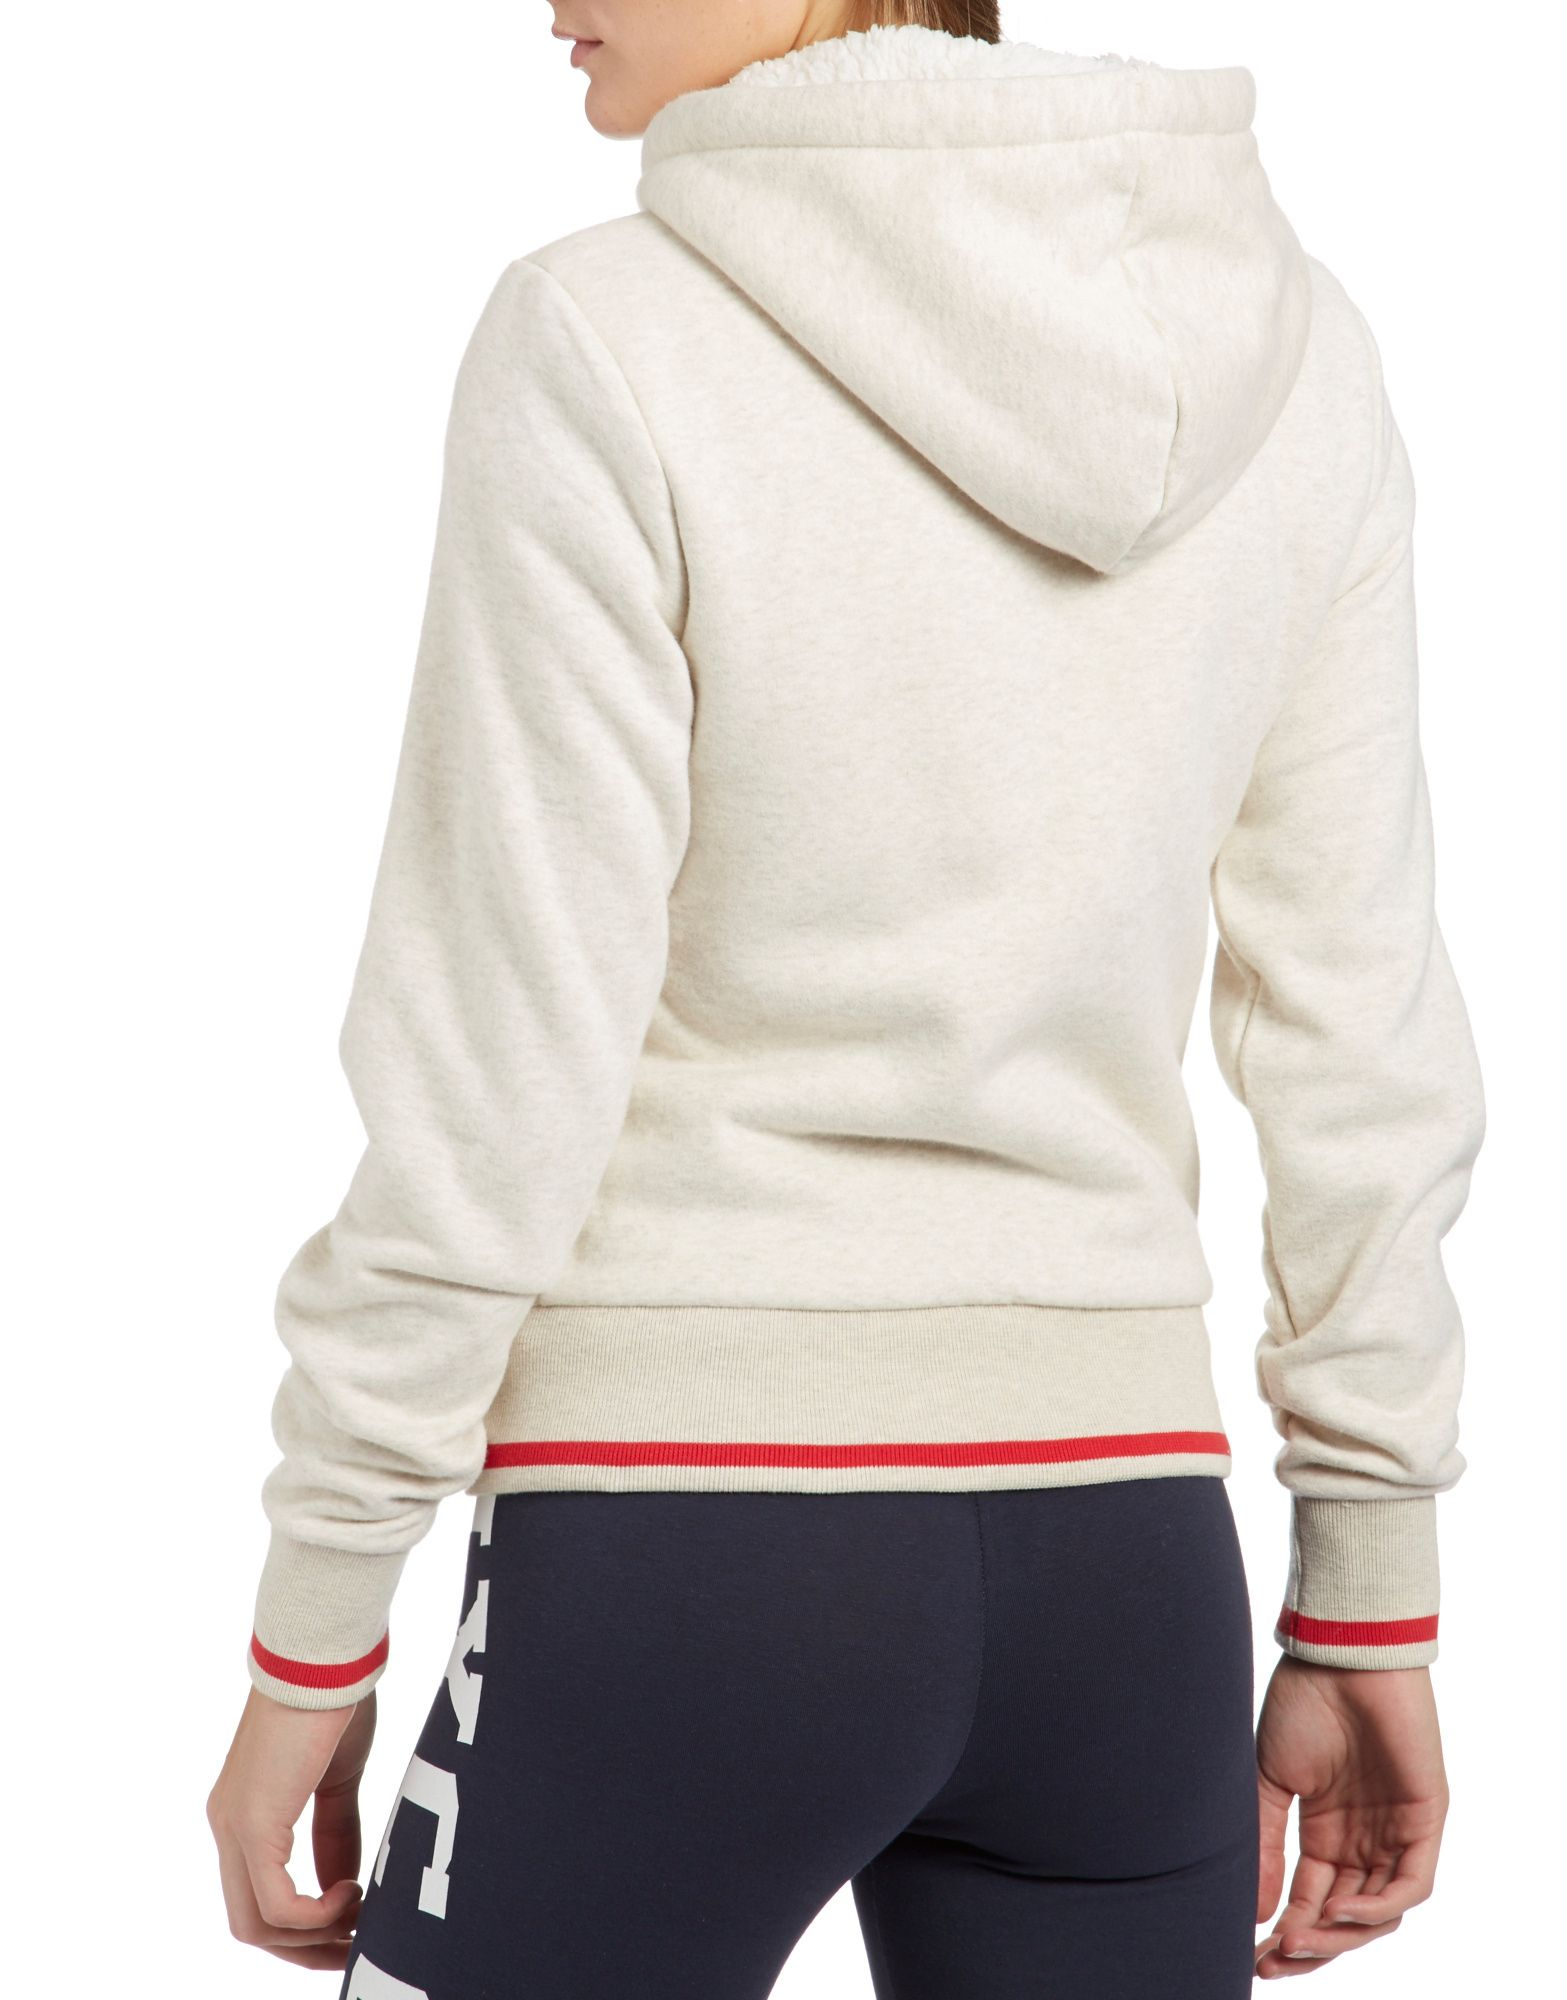 Brookhaven Chloe Borg Lined Hoody